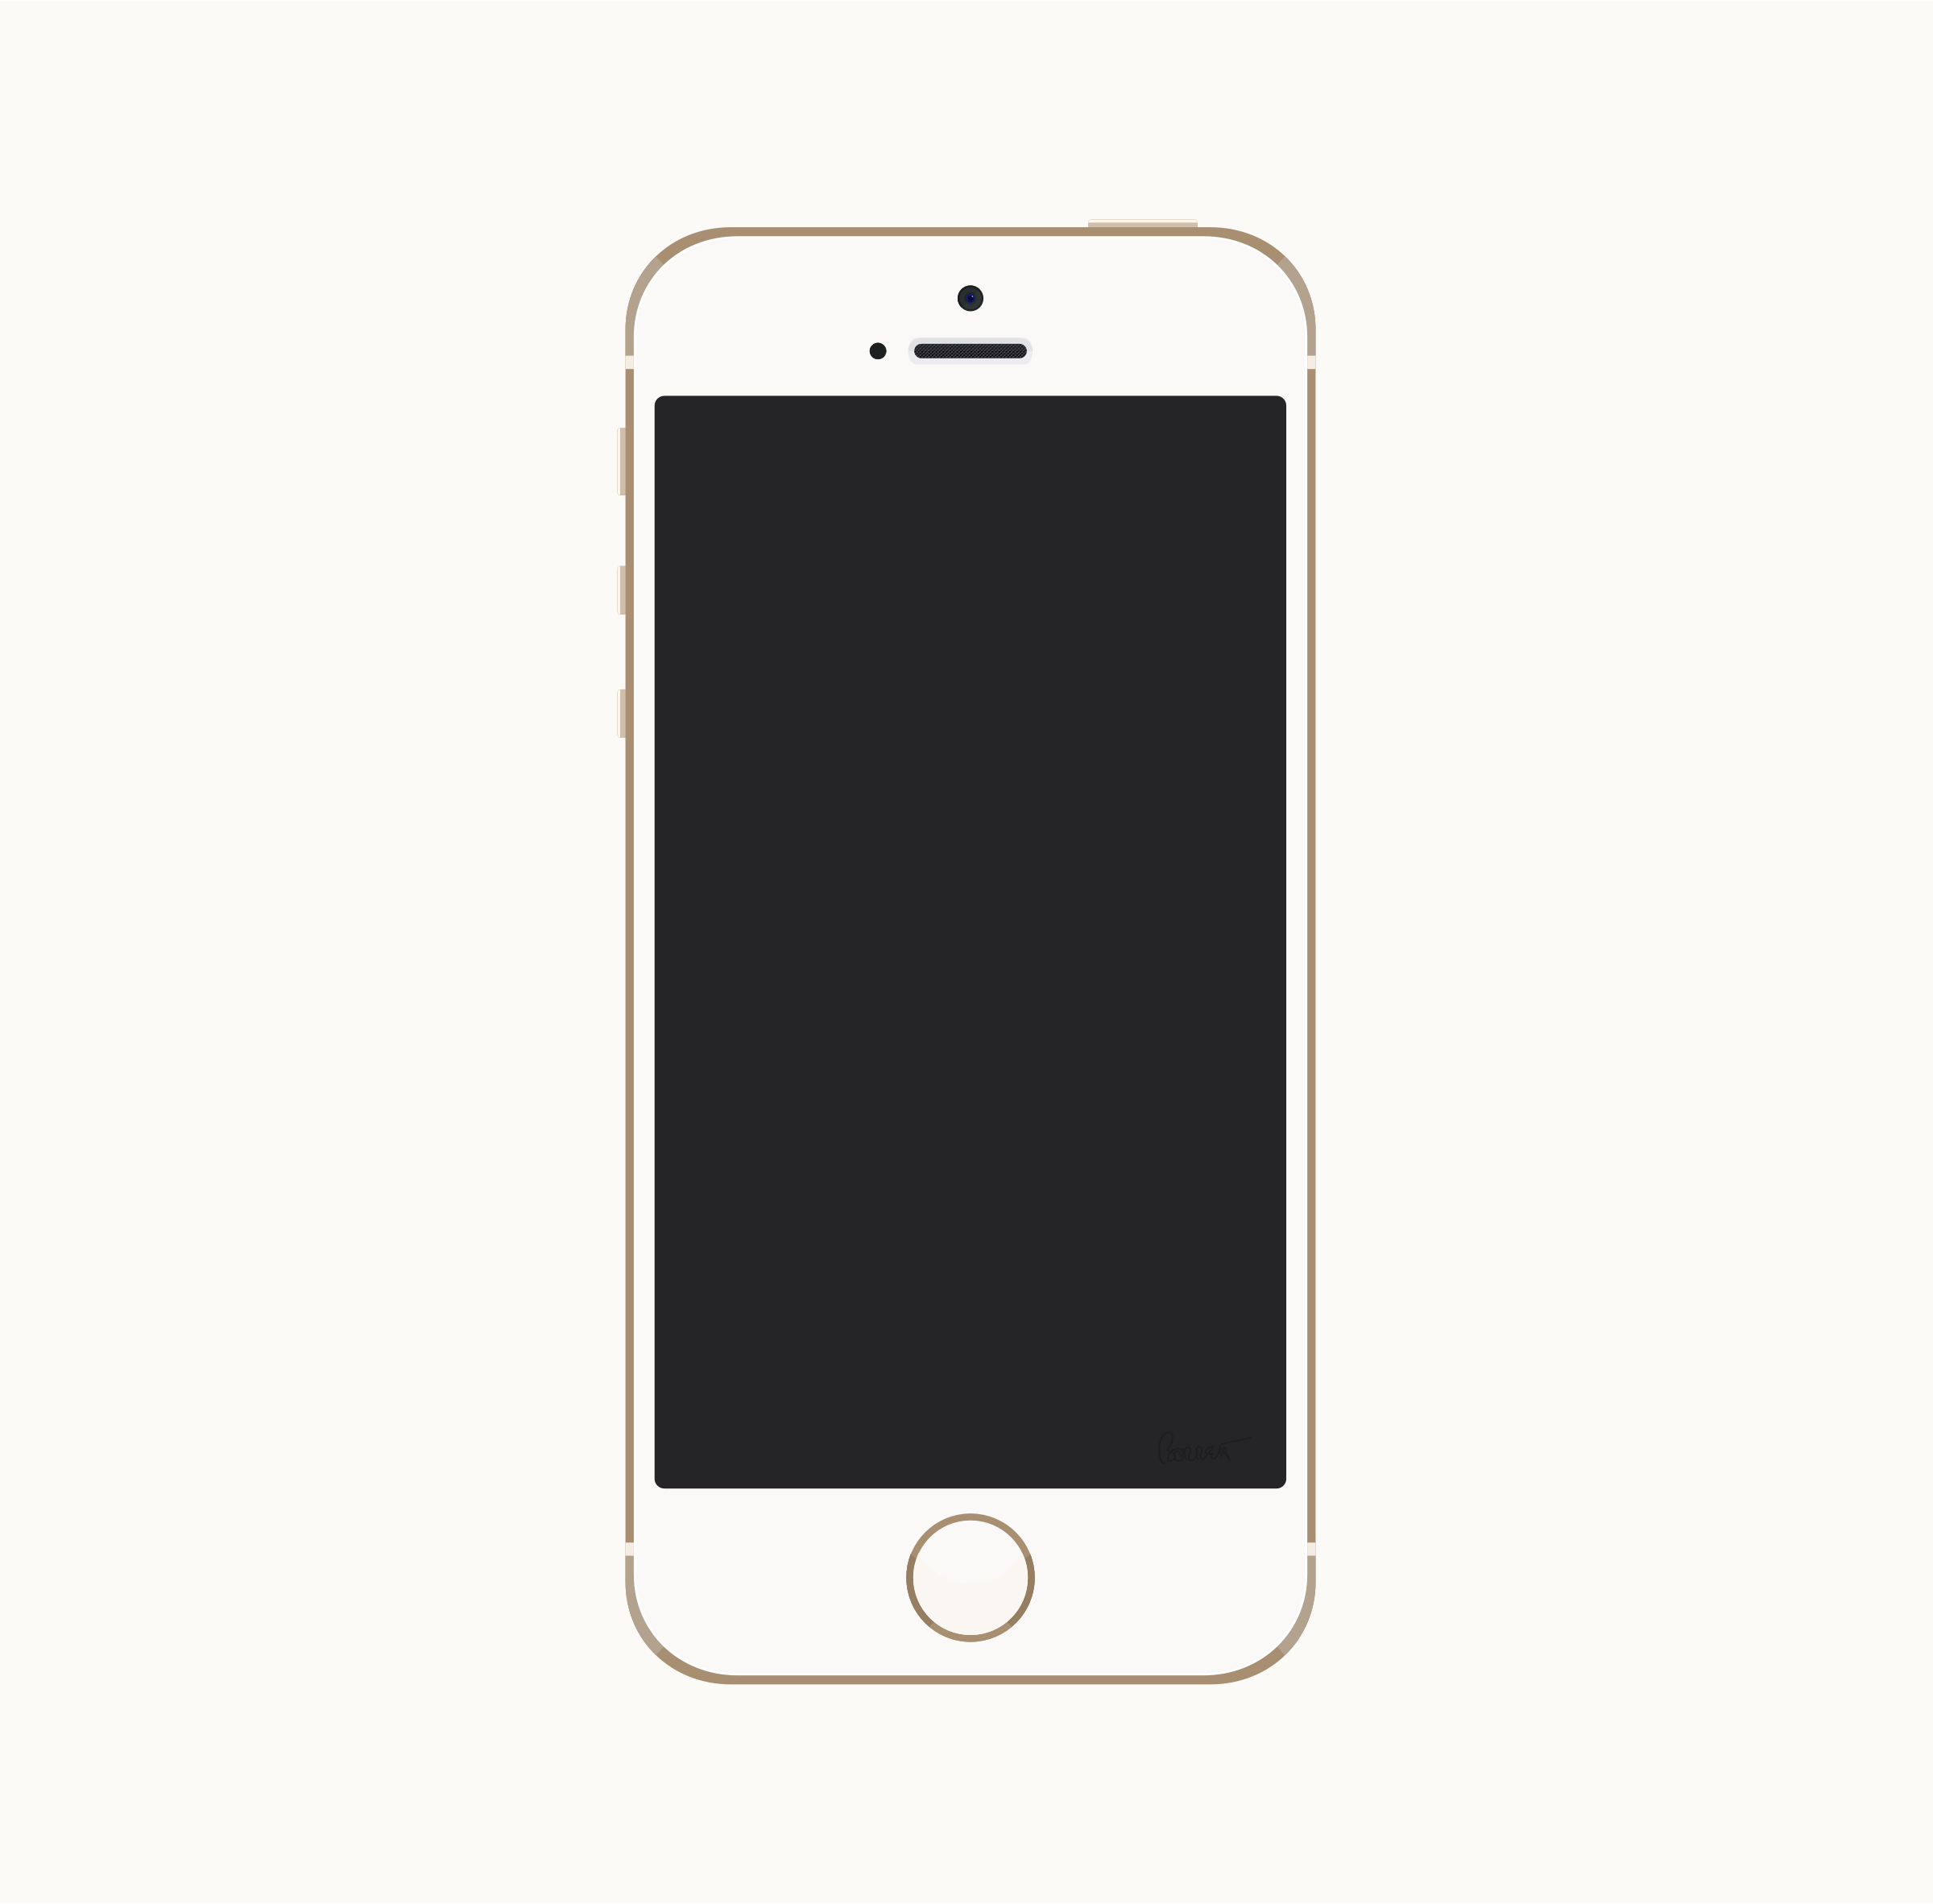 Iphone 5 clipart size picture transparent stock Iphone 5s clipart size - ClipartFest picture transparent stock